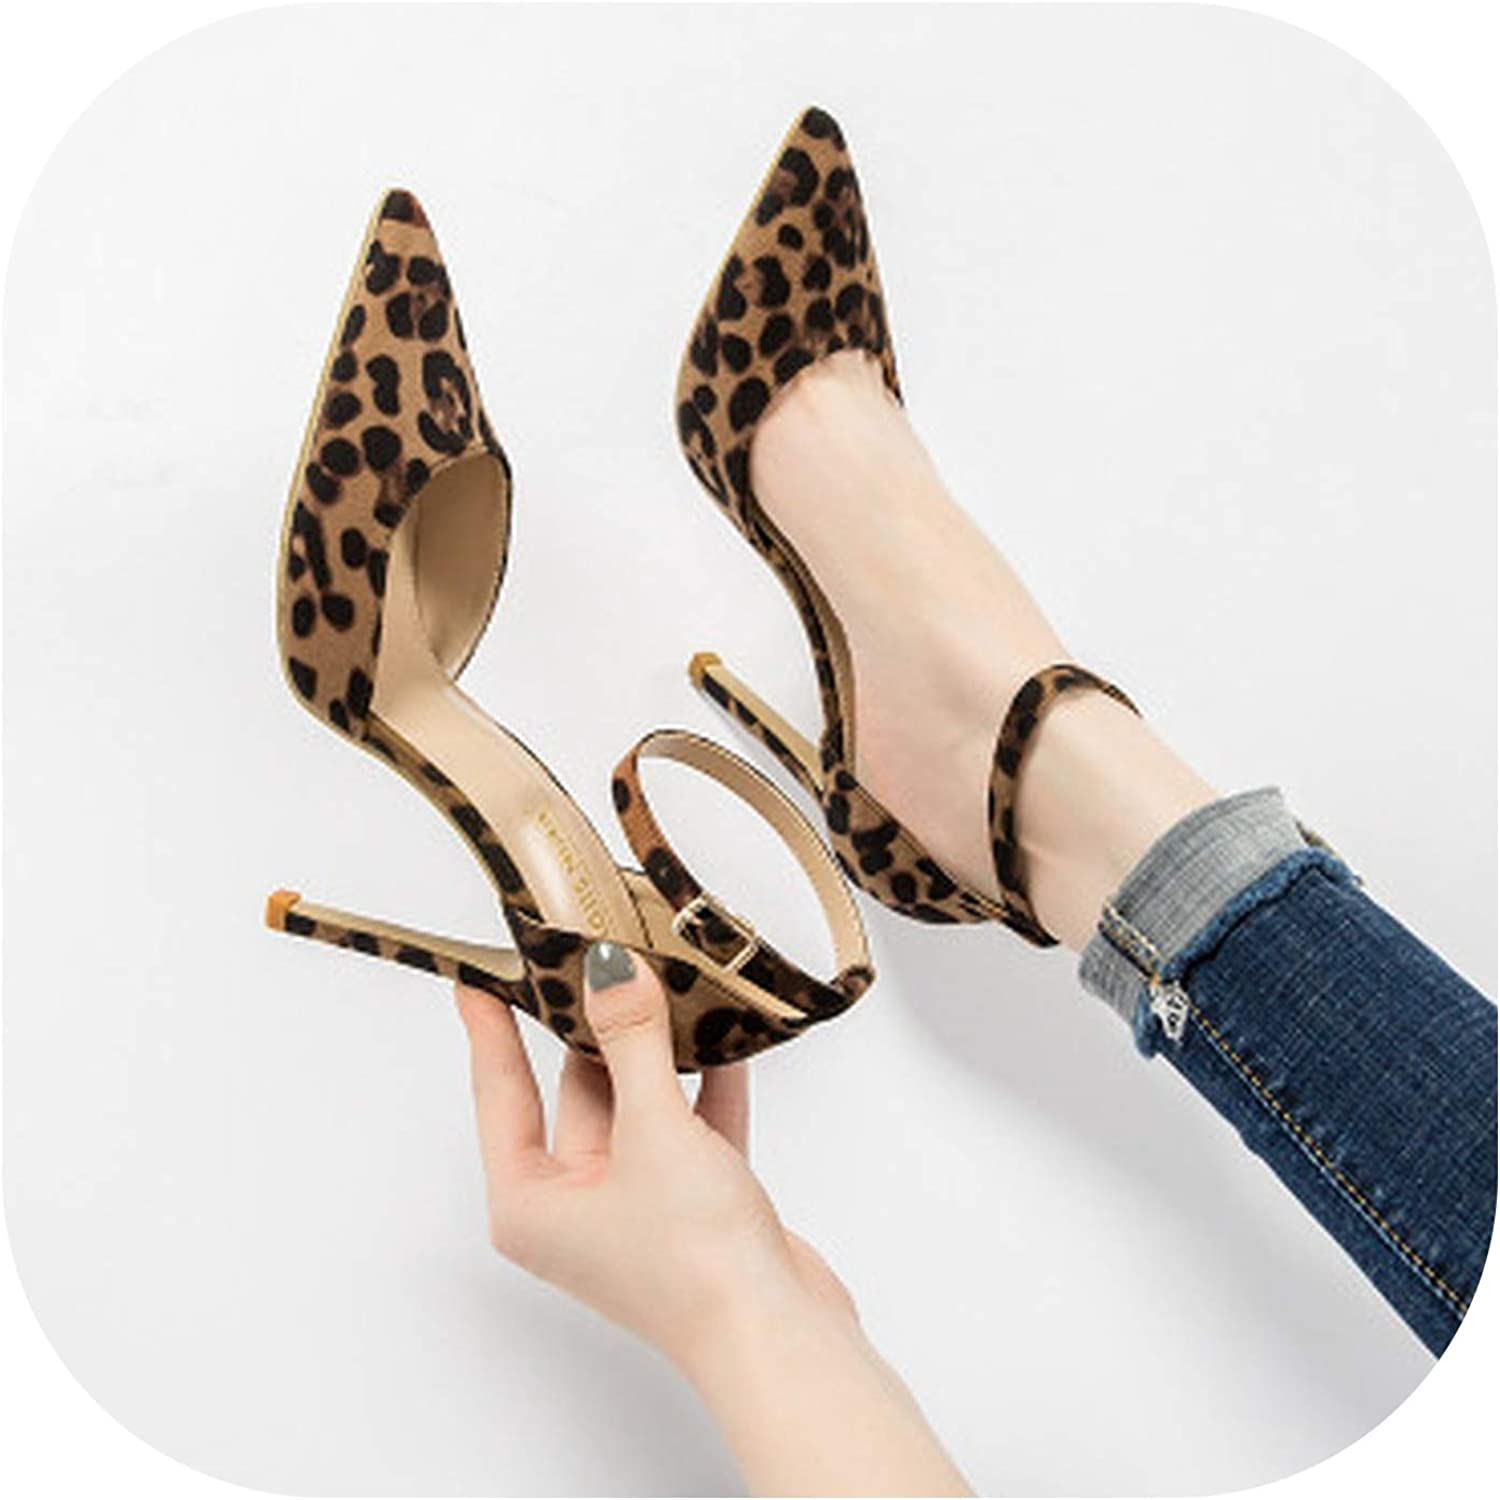 Leopard Women shoes High Heels Office Pumps shoes Pointed Toe Luxury Singles shoes